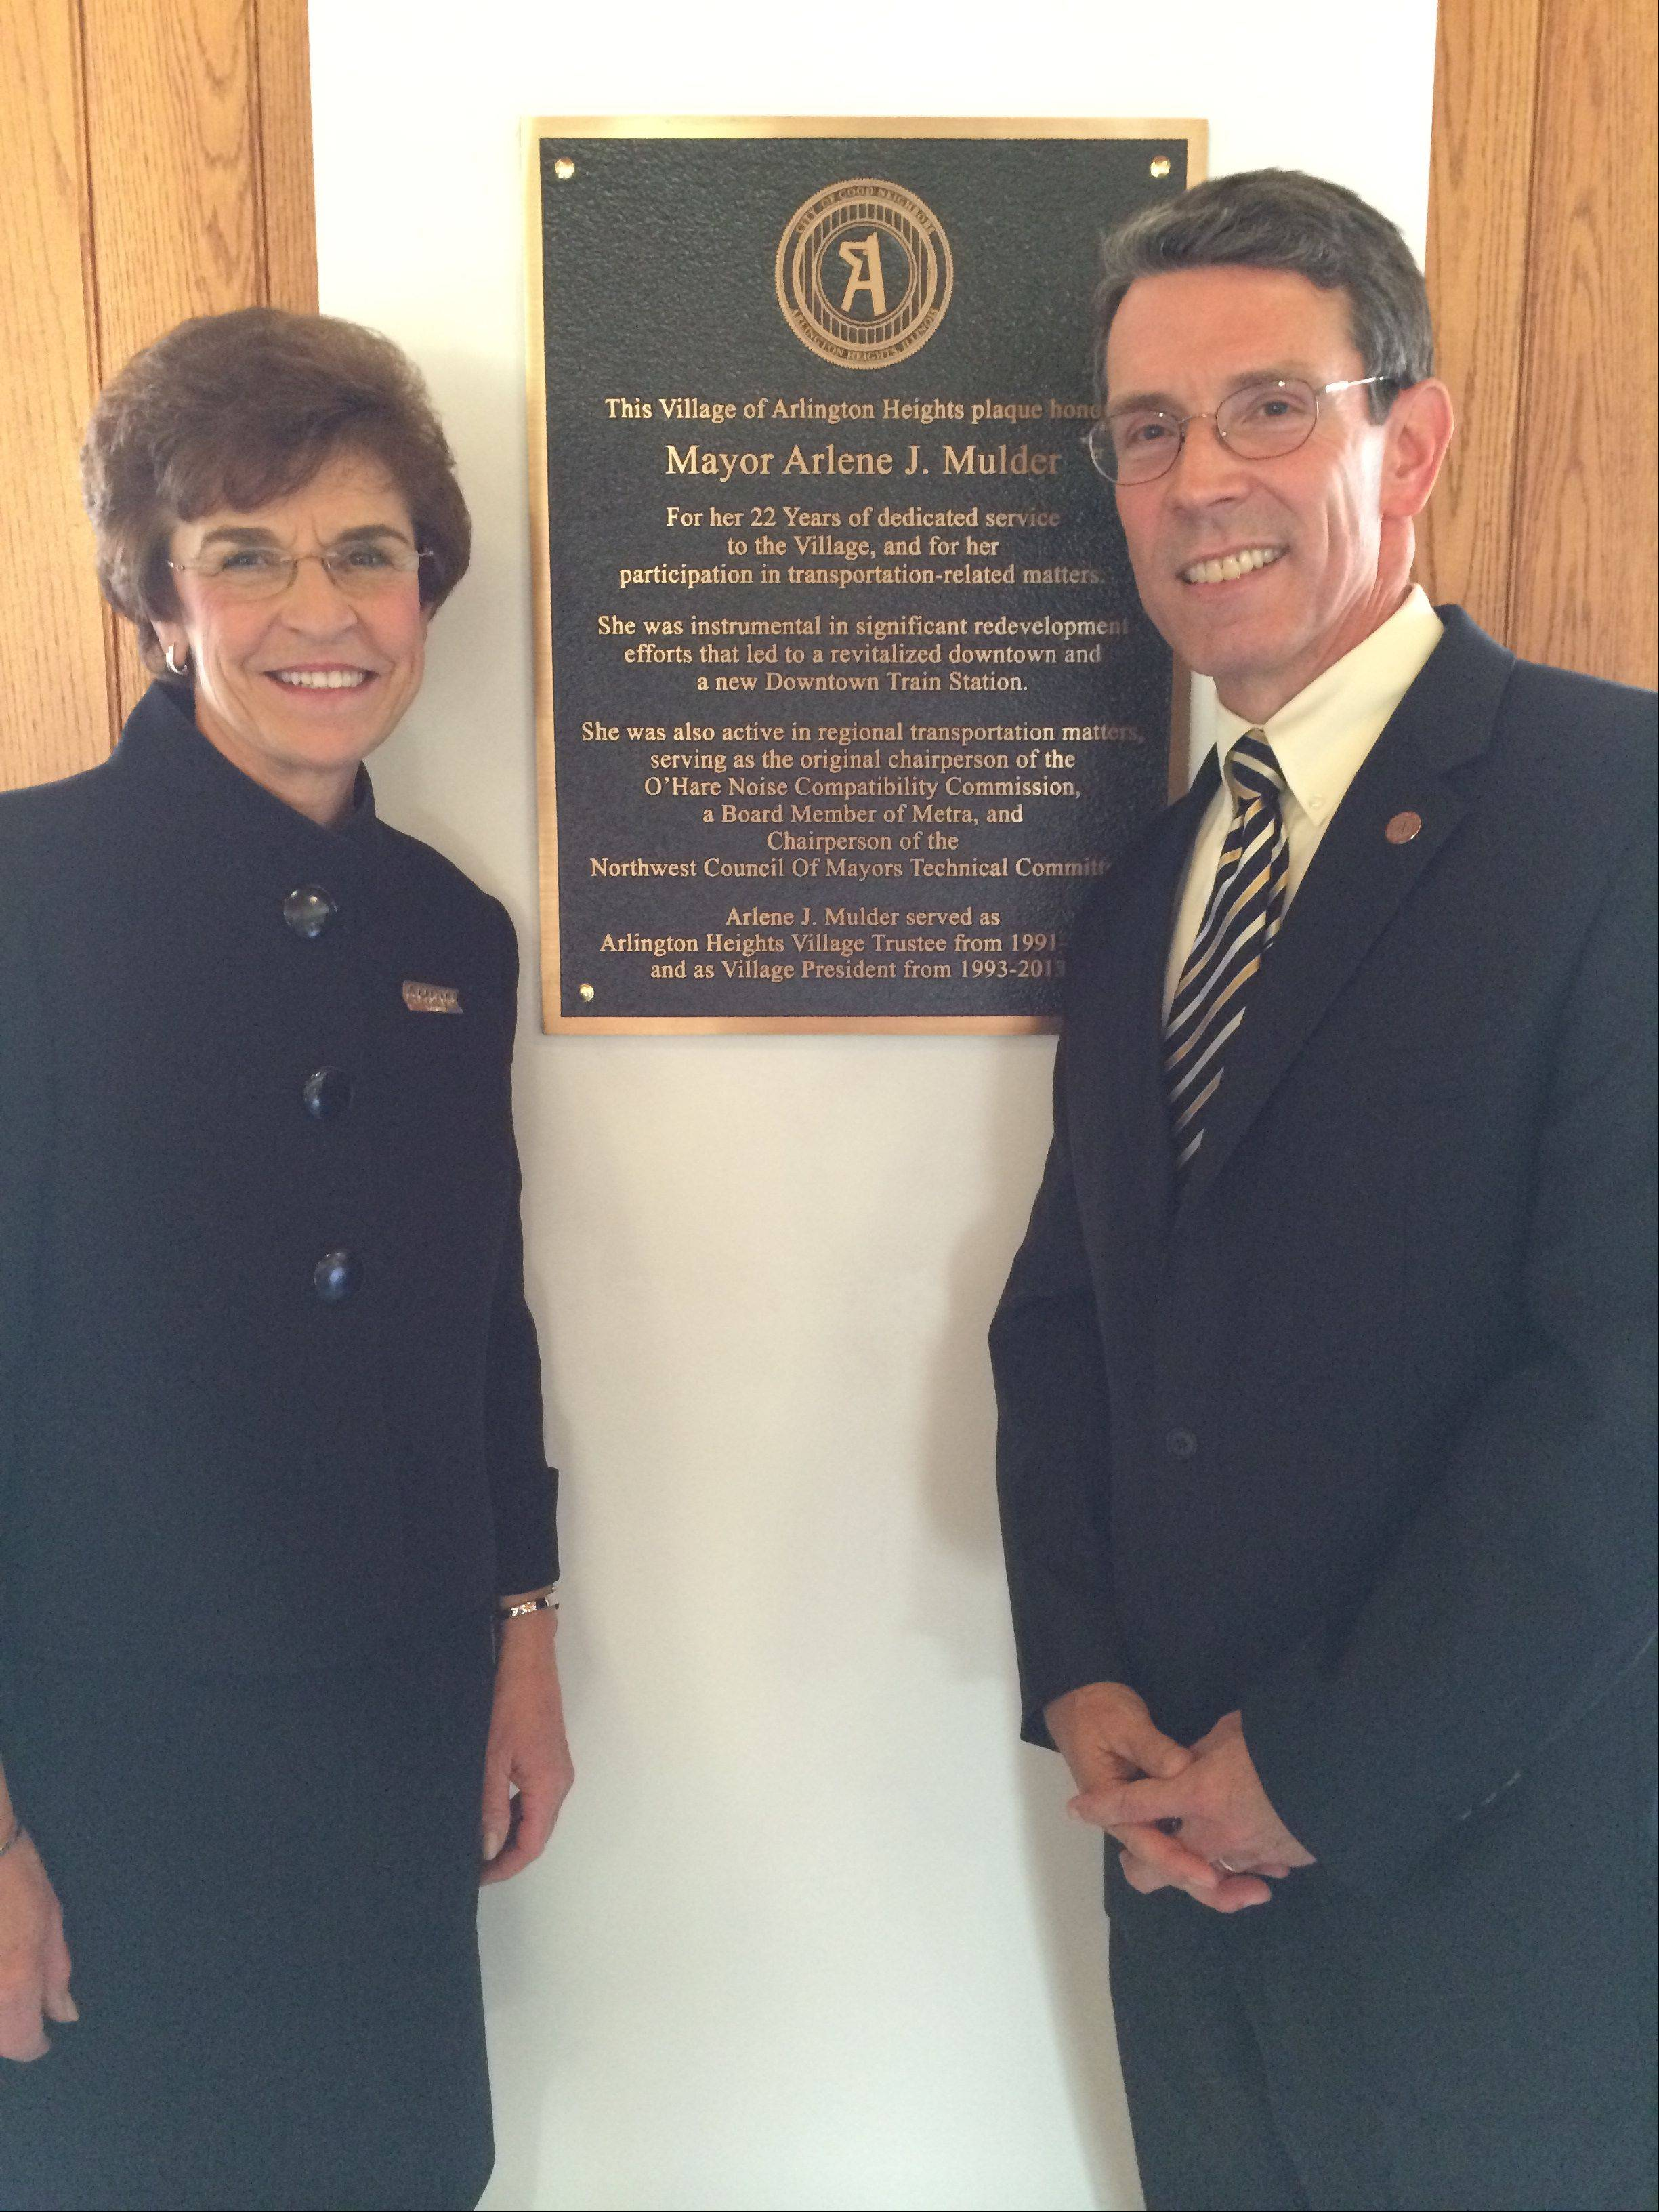 Former Arlington Heights Mayor Arlene Mulder and current Mayor Tom Hayes unveil a plaque at the downtown train station on Tuesday honoring Mulder�s 22 years of service to the village and her work on regional transportation issues.